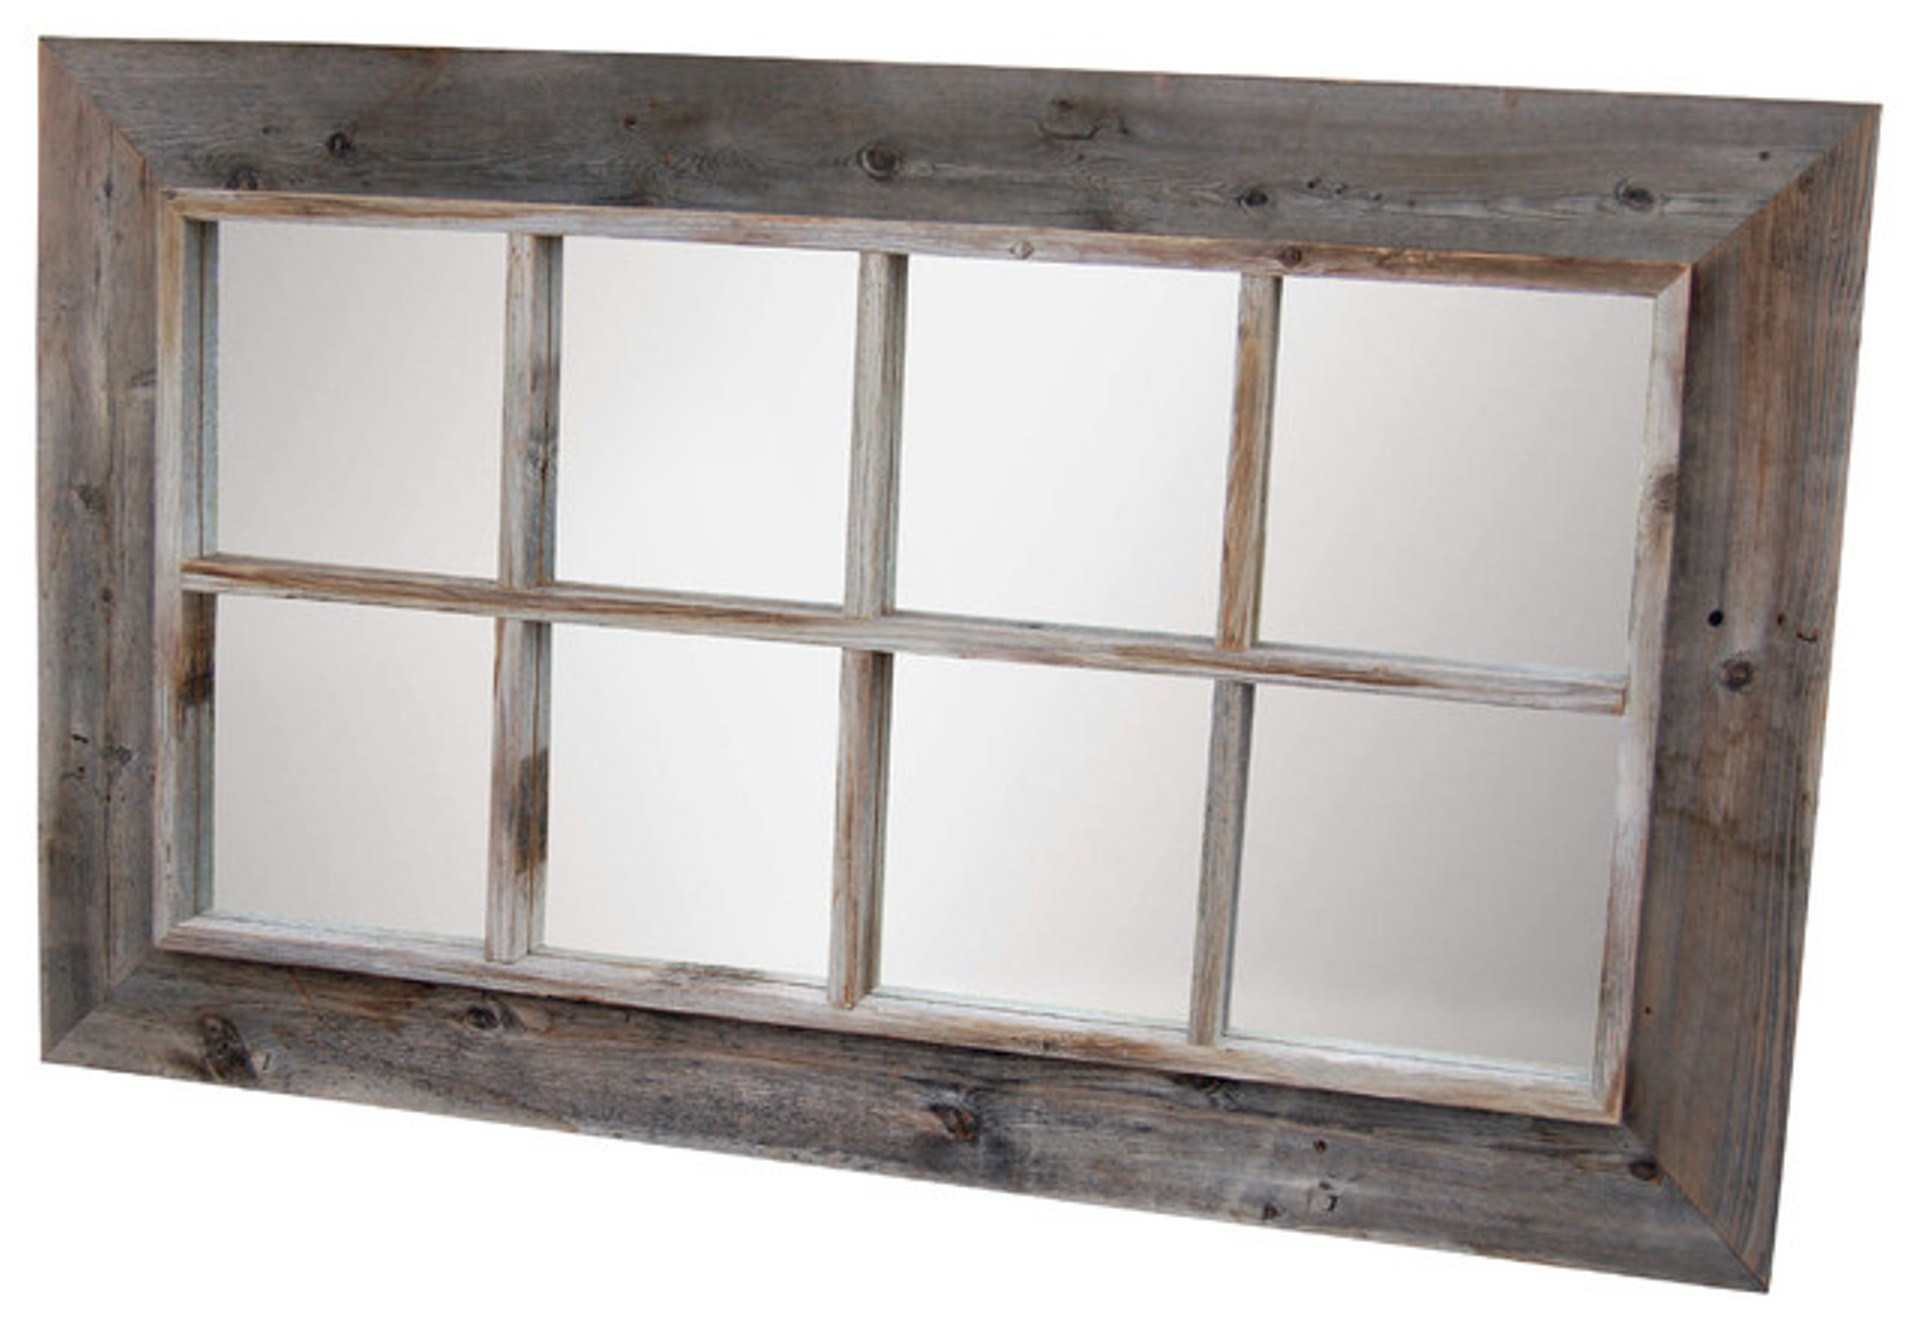 Moroccan Wall Mirror | Windowpane Mirror | Multi Paned Mirror